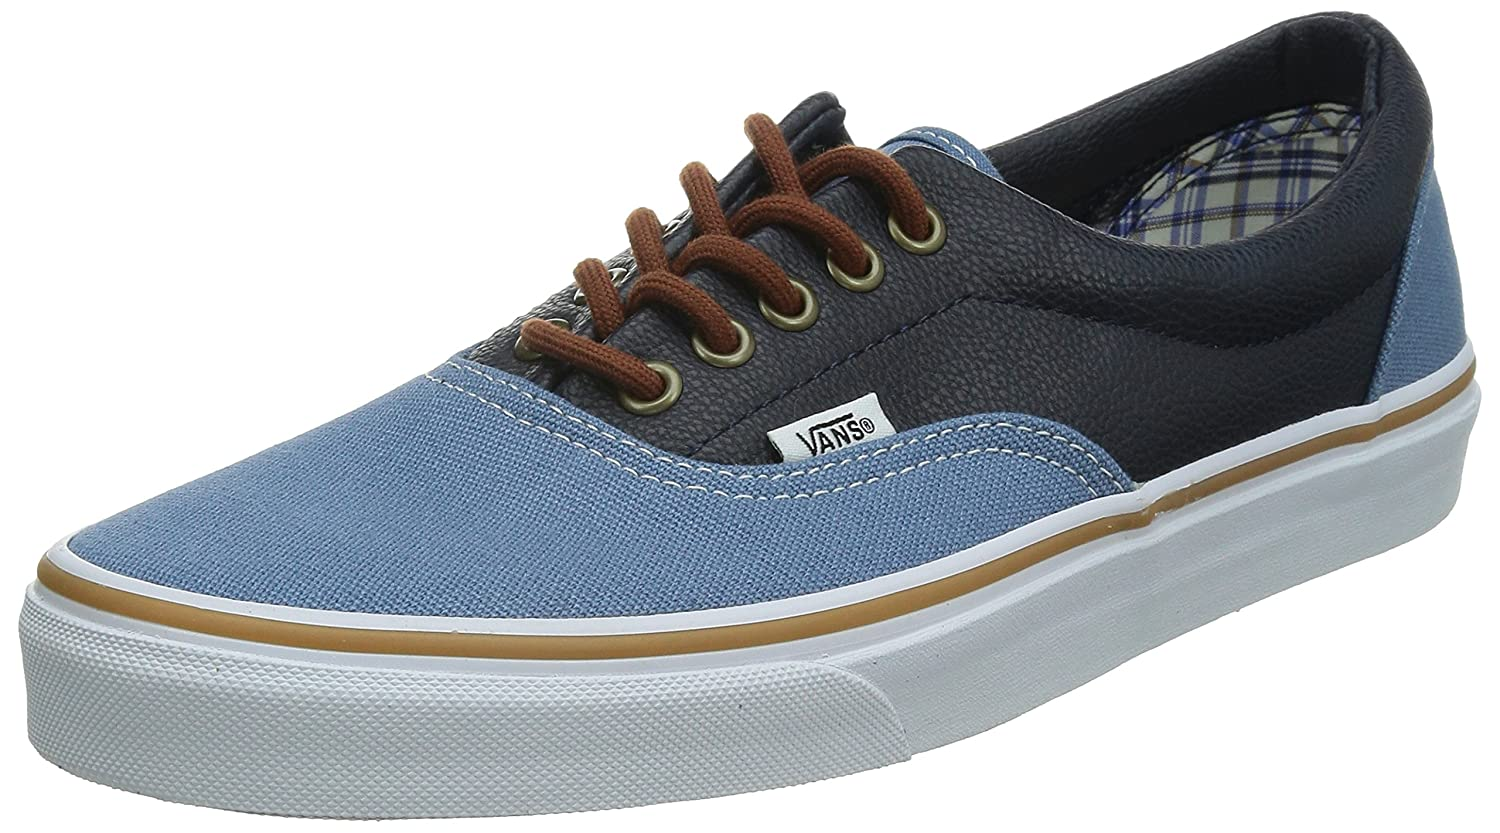 Vans Men's Era B00PMMYH6Y M8.5/W10|Grey/Navy